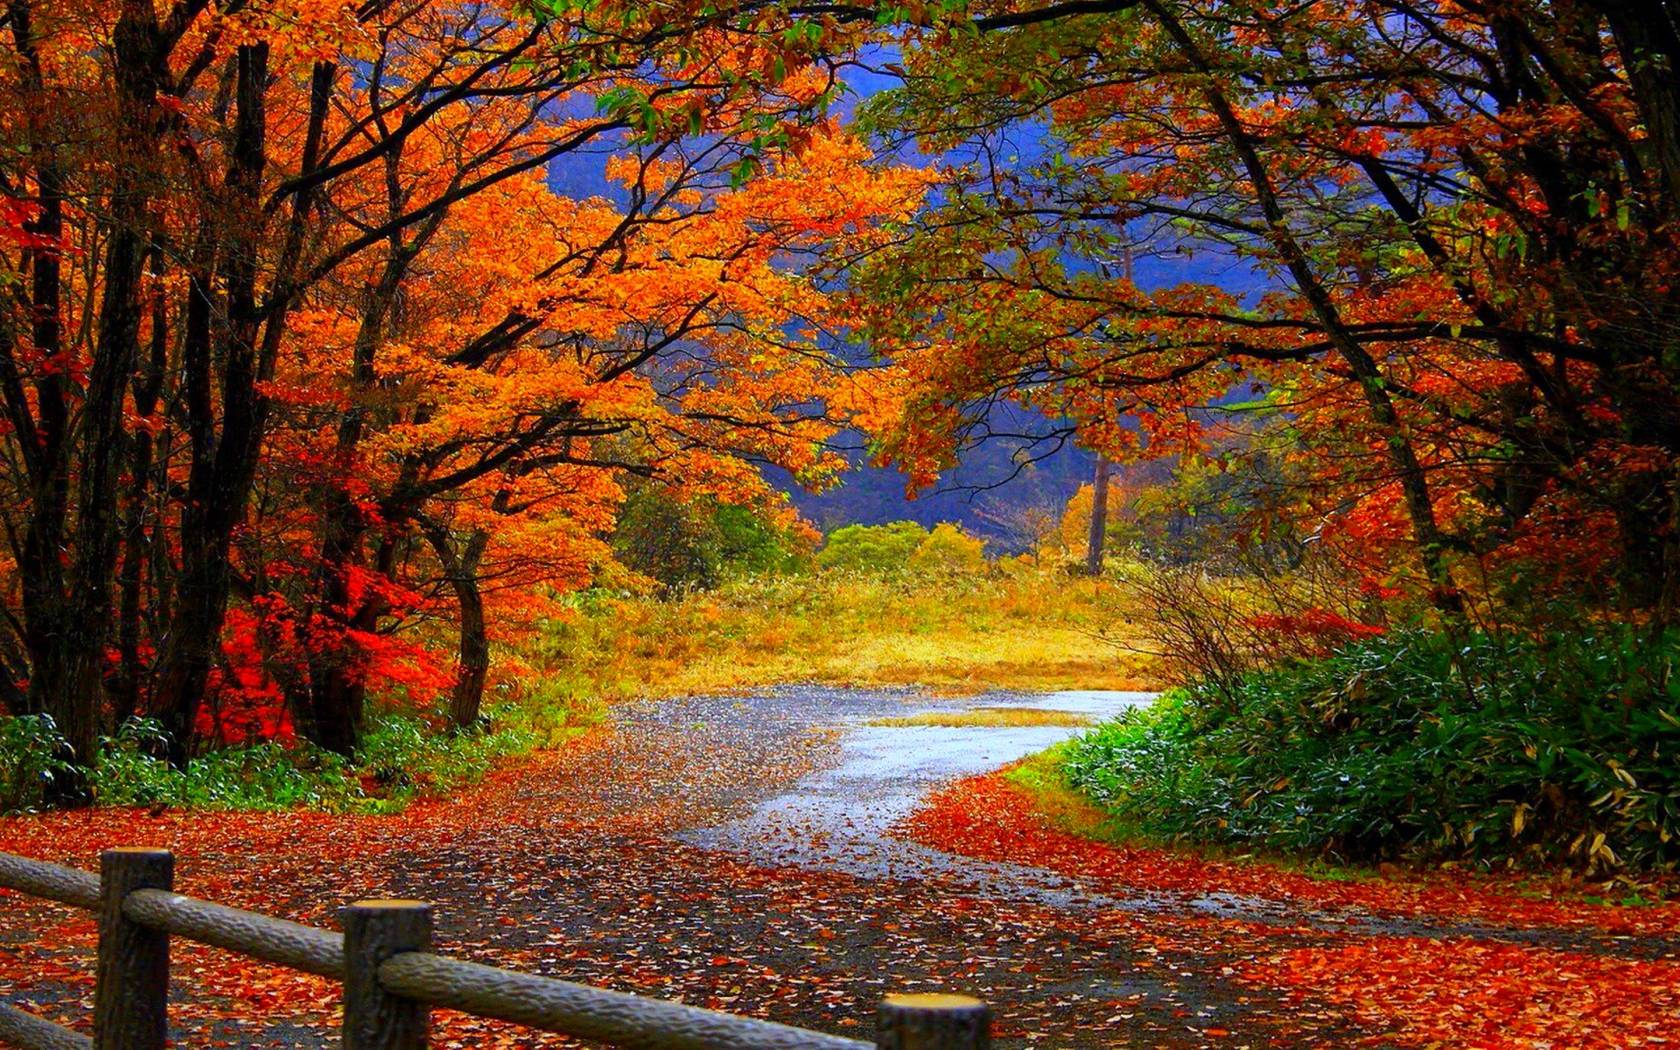 Fall Android Wallpaper Top 6 Android Autumn Live Wallpapers To Enjoy Falling Leaves